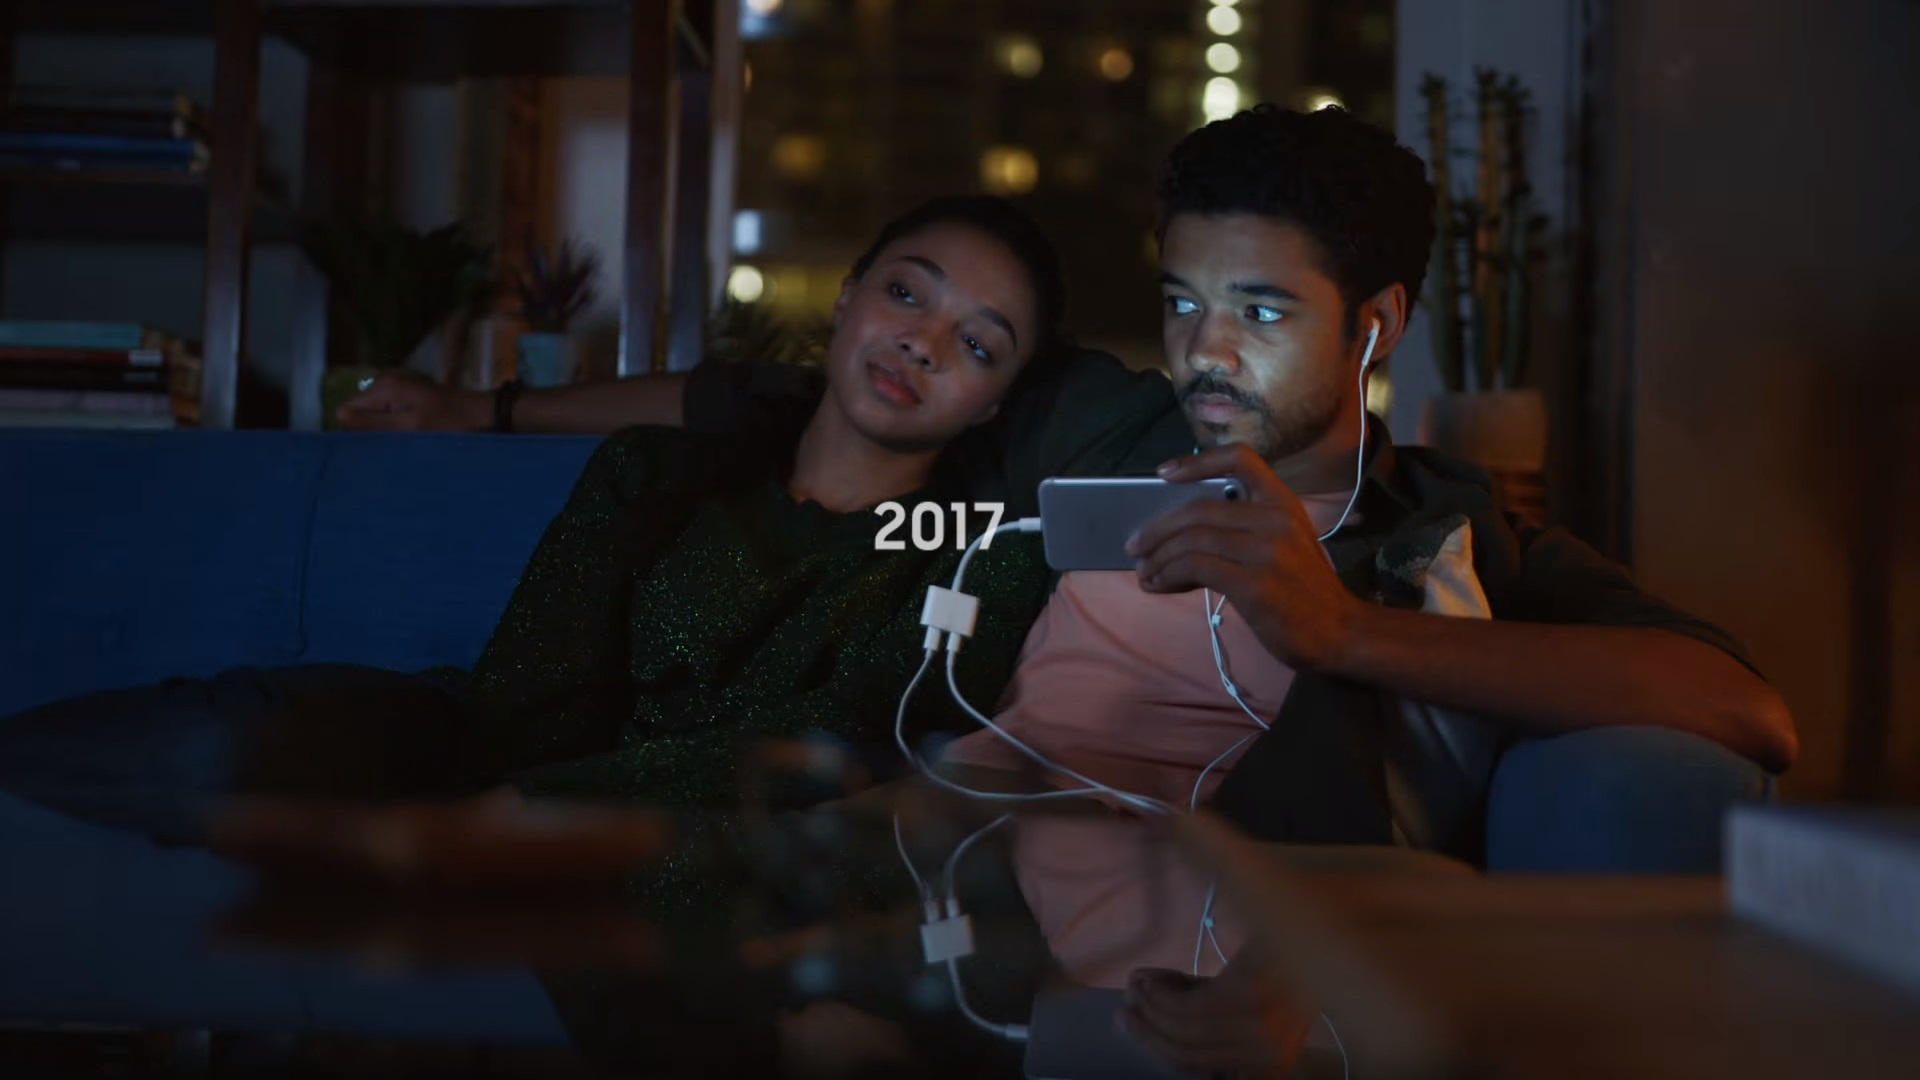 samsung-disses-on-iphones-in-humorous-commercial-social.jpg